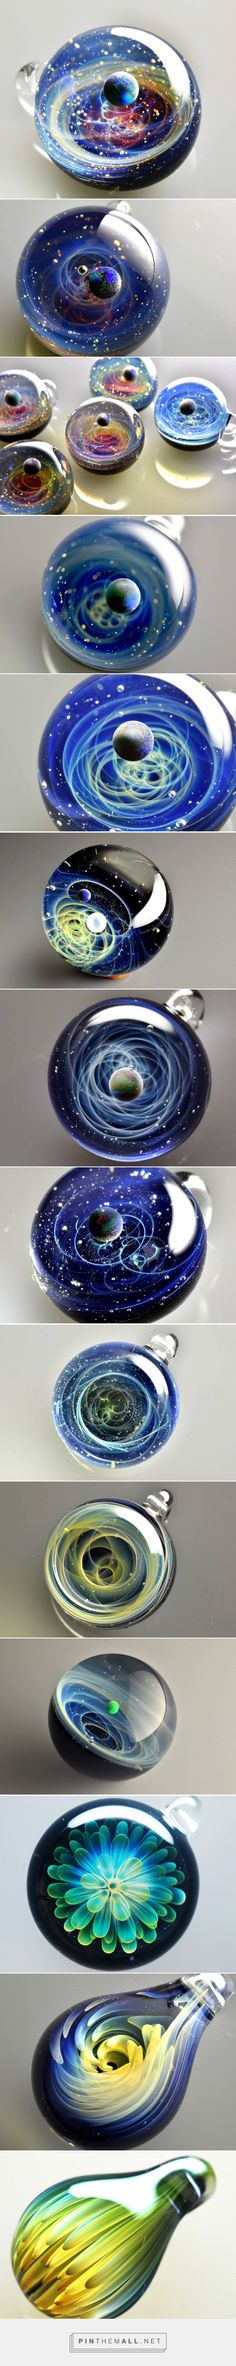 Space Glass: Extraordinary Solar Systems and Flowers Encased in Glass by Satoshi Tomizu | Colossal http://www.thisiscolossal.com/2015/11/space-glass-satoshi-tomizu/ - created via https://pinthemall.net